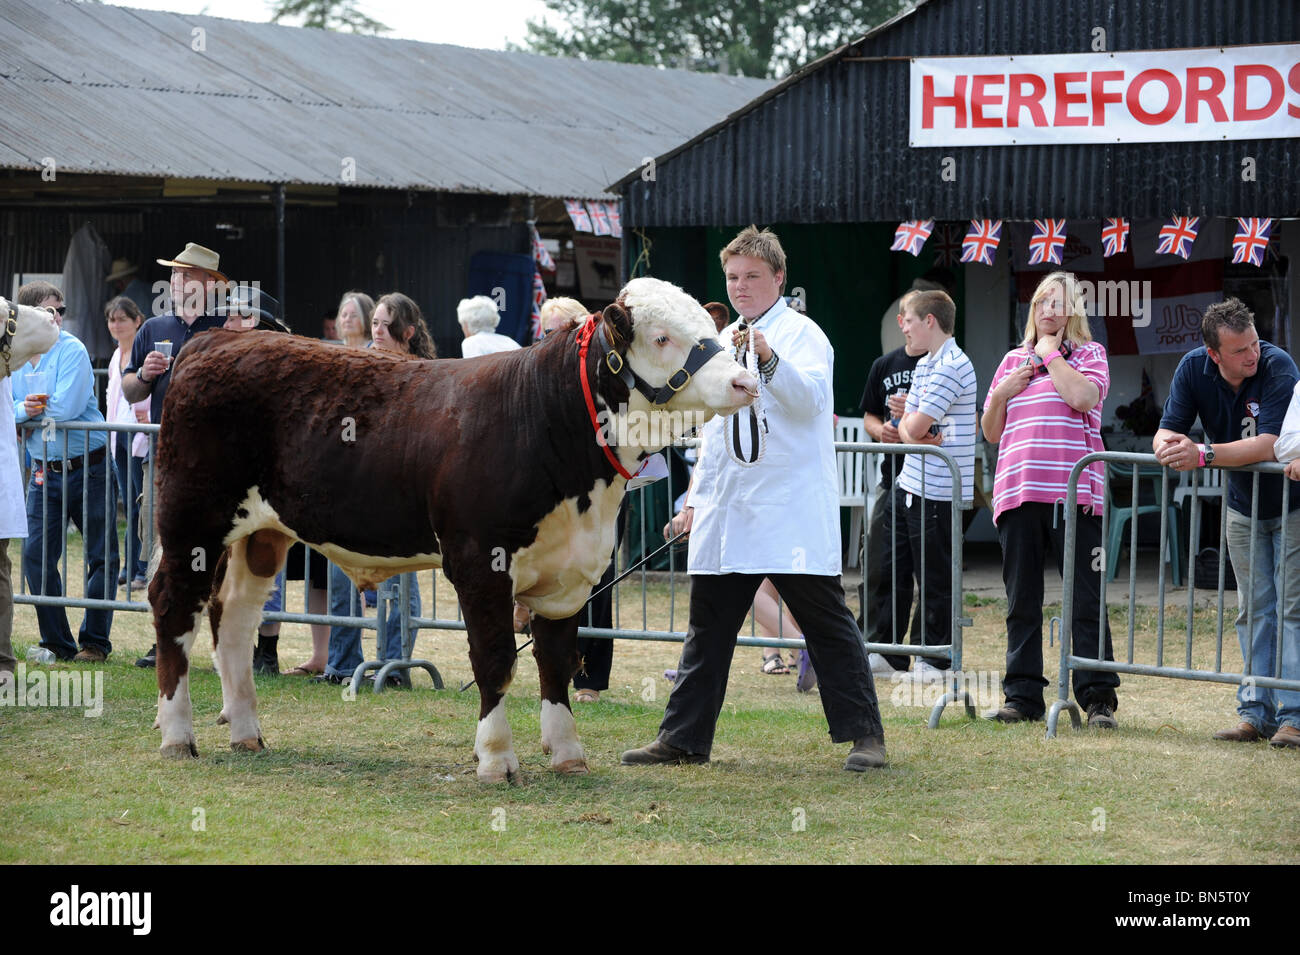 Young stockman leading a Hereford Bull into judging ring Shropshire County Show - Stock Image